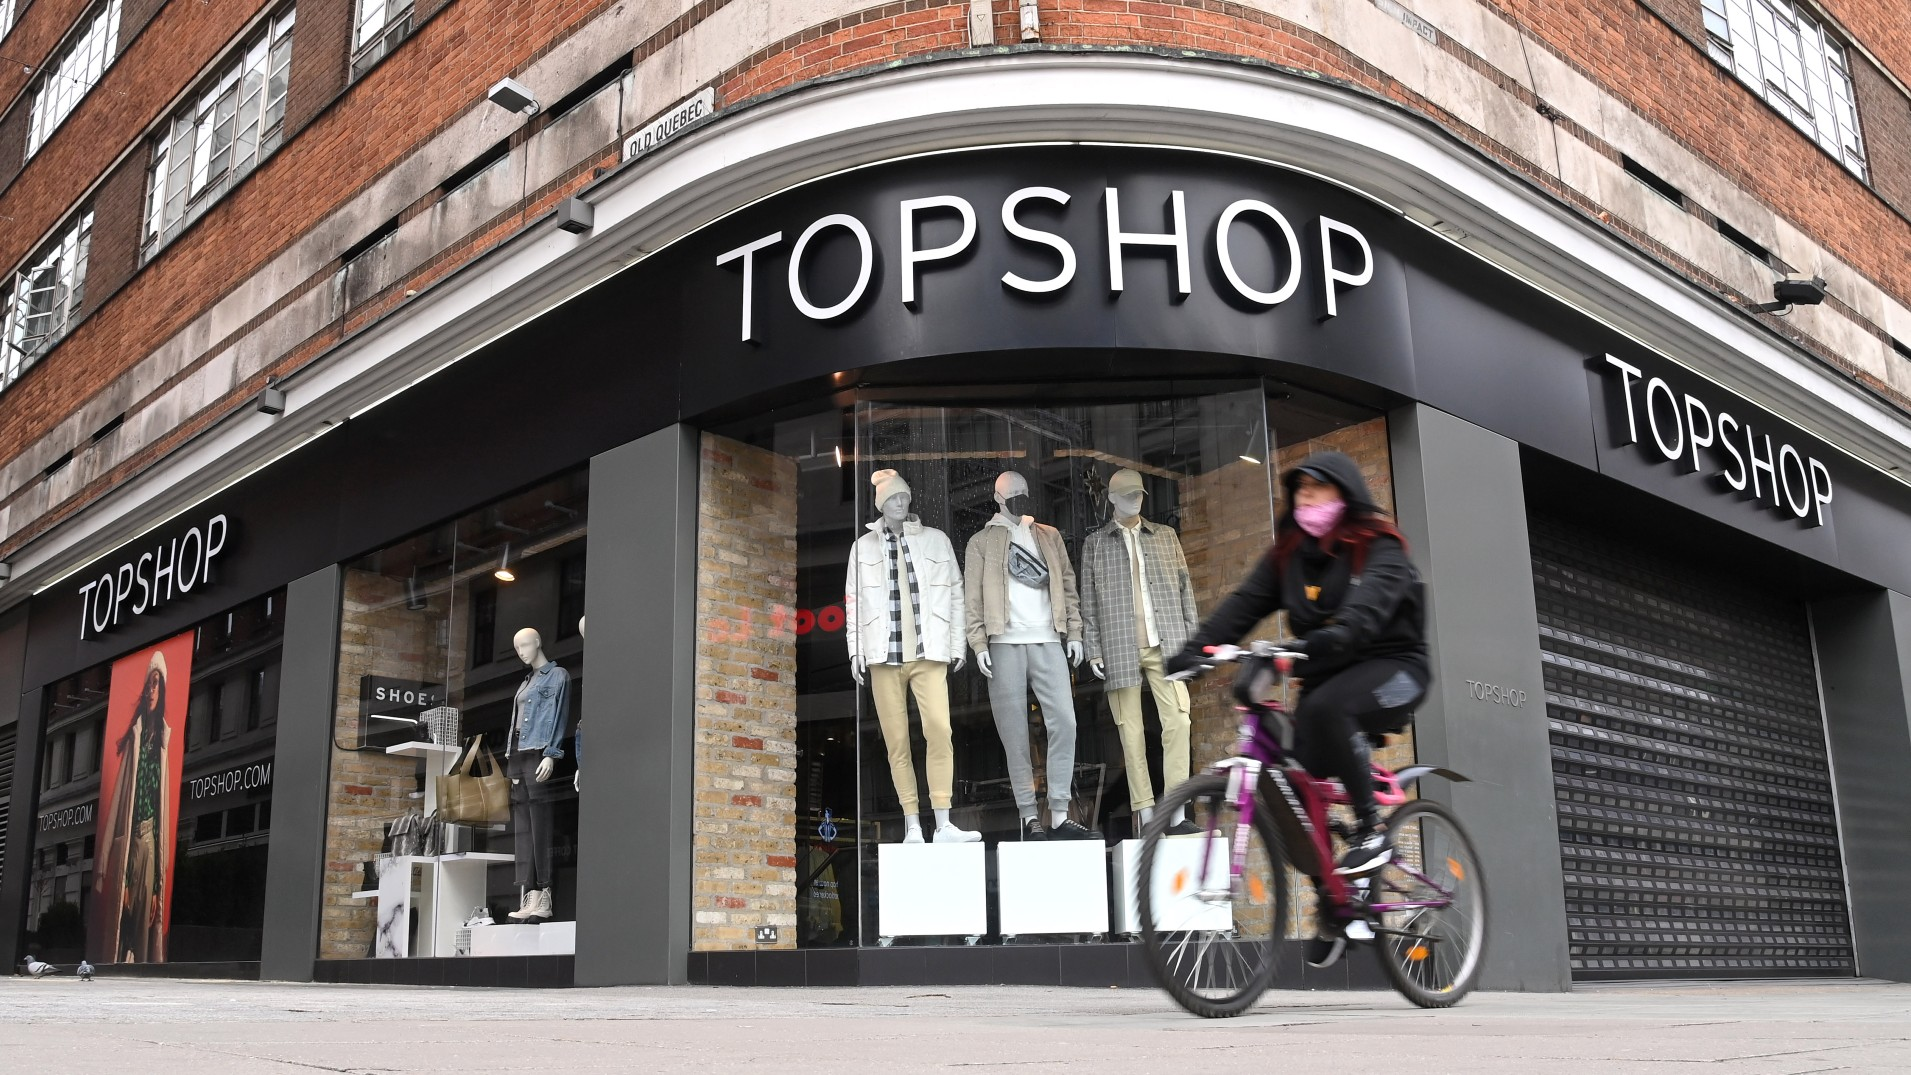 Arcadia: 'No last minute rescue' for Topshop owner thumbnail